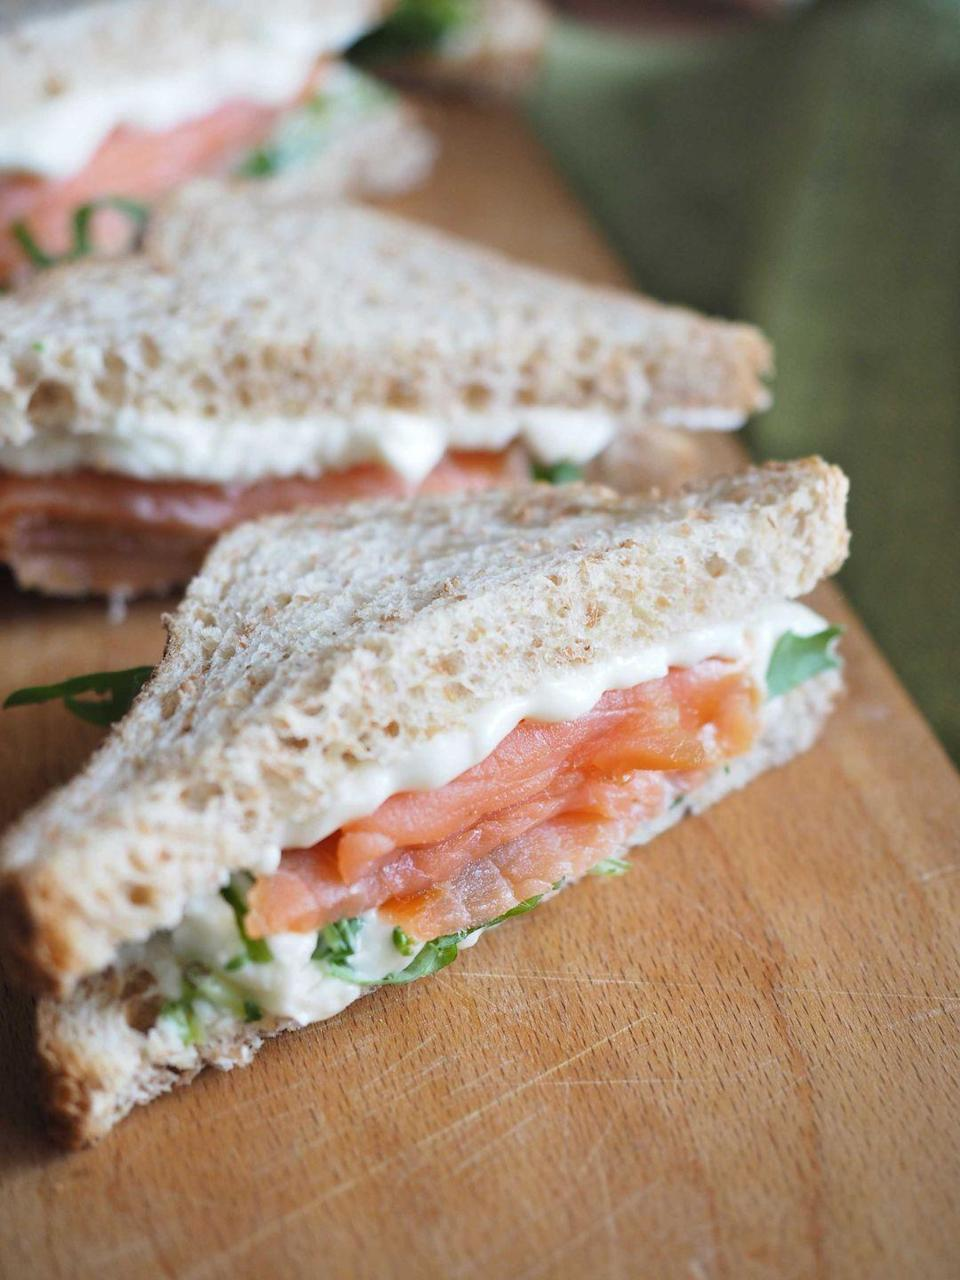 "<p><strong>Smoked Salmon Sandwich</strong></p><p>The Smoked Salmon Sandwich on wheat became Washington's official sandwich in 1987. But lawmakers say, the condiments are your choice. A great dish at <a href=""https://www.pikeplacechowder.com/"" rel=""nofollow noopener"" target=""_blank"" data-ylk=""slk:Pike Place Chowder"" class=""link rapid-noclick-resp"">Pike Place Chowder</a> to eat for breakfast or lunch we recommend to top your sandwich with capers. </p>"